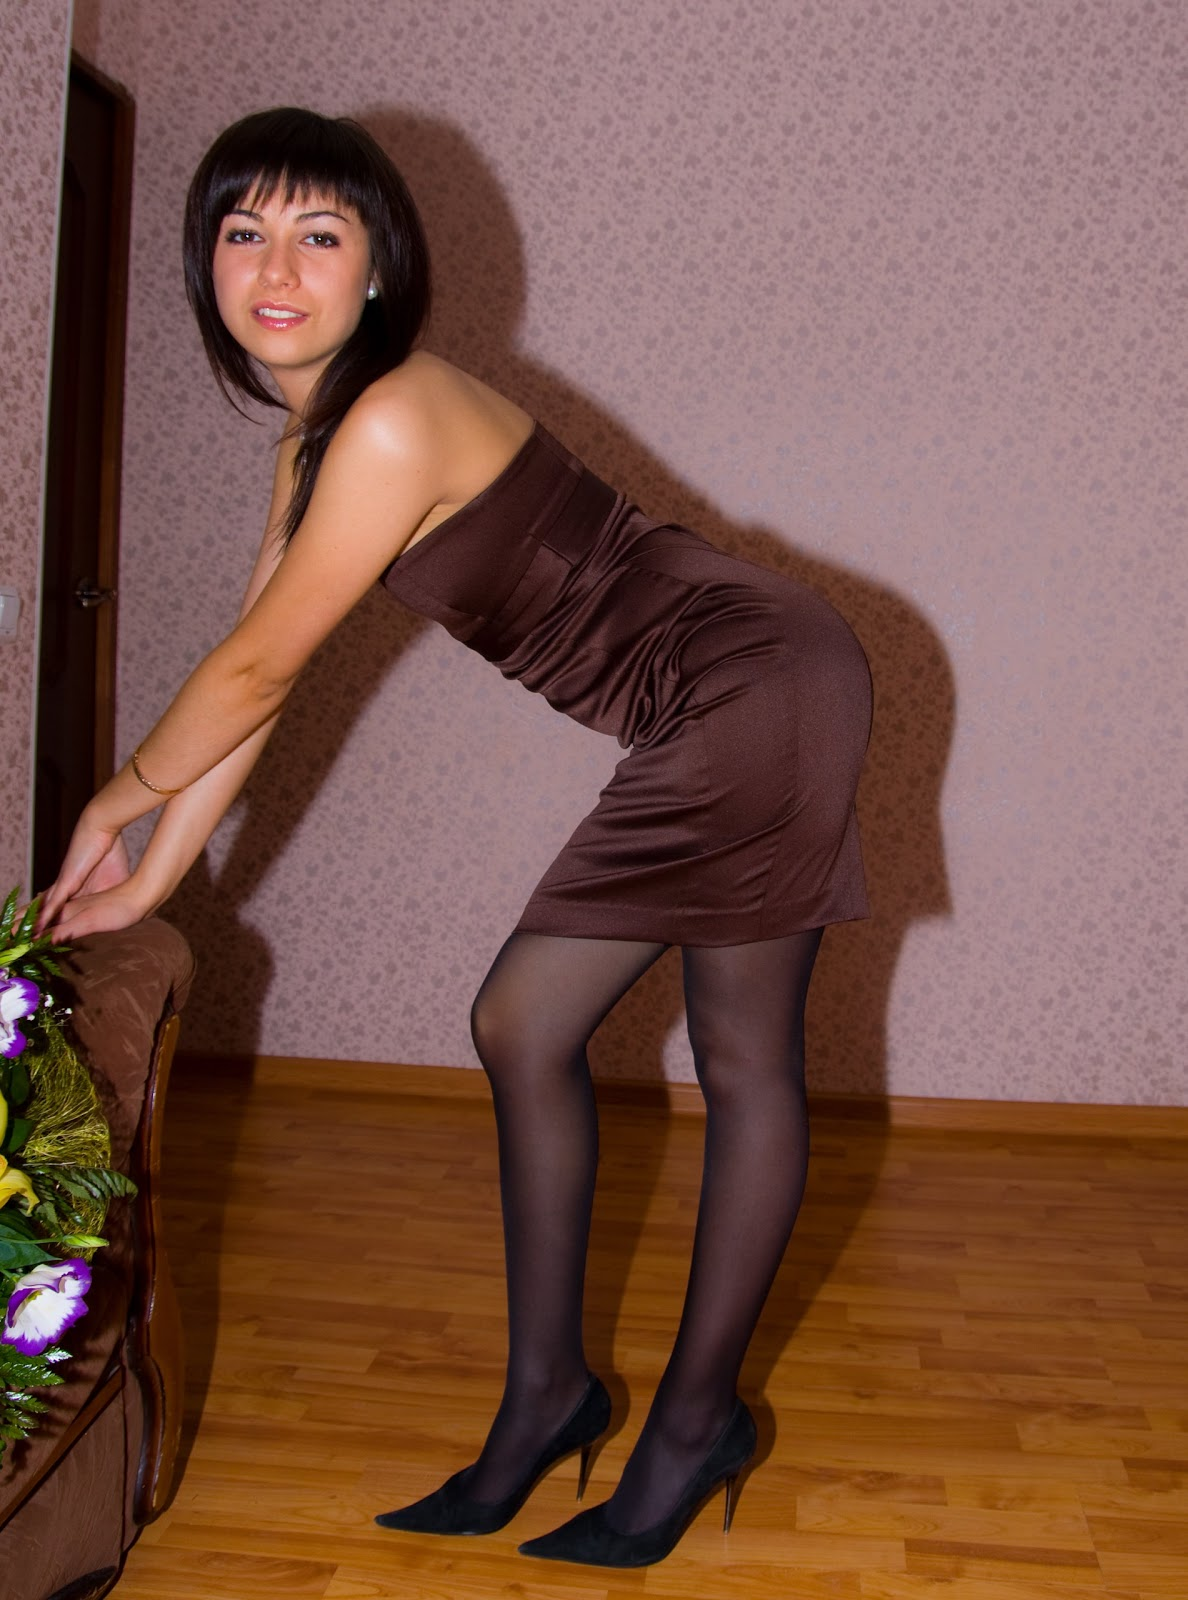 Girls live in pantyhose here bondage